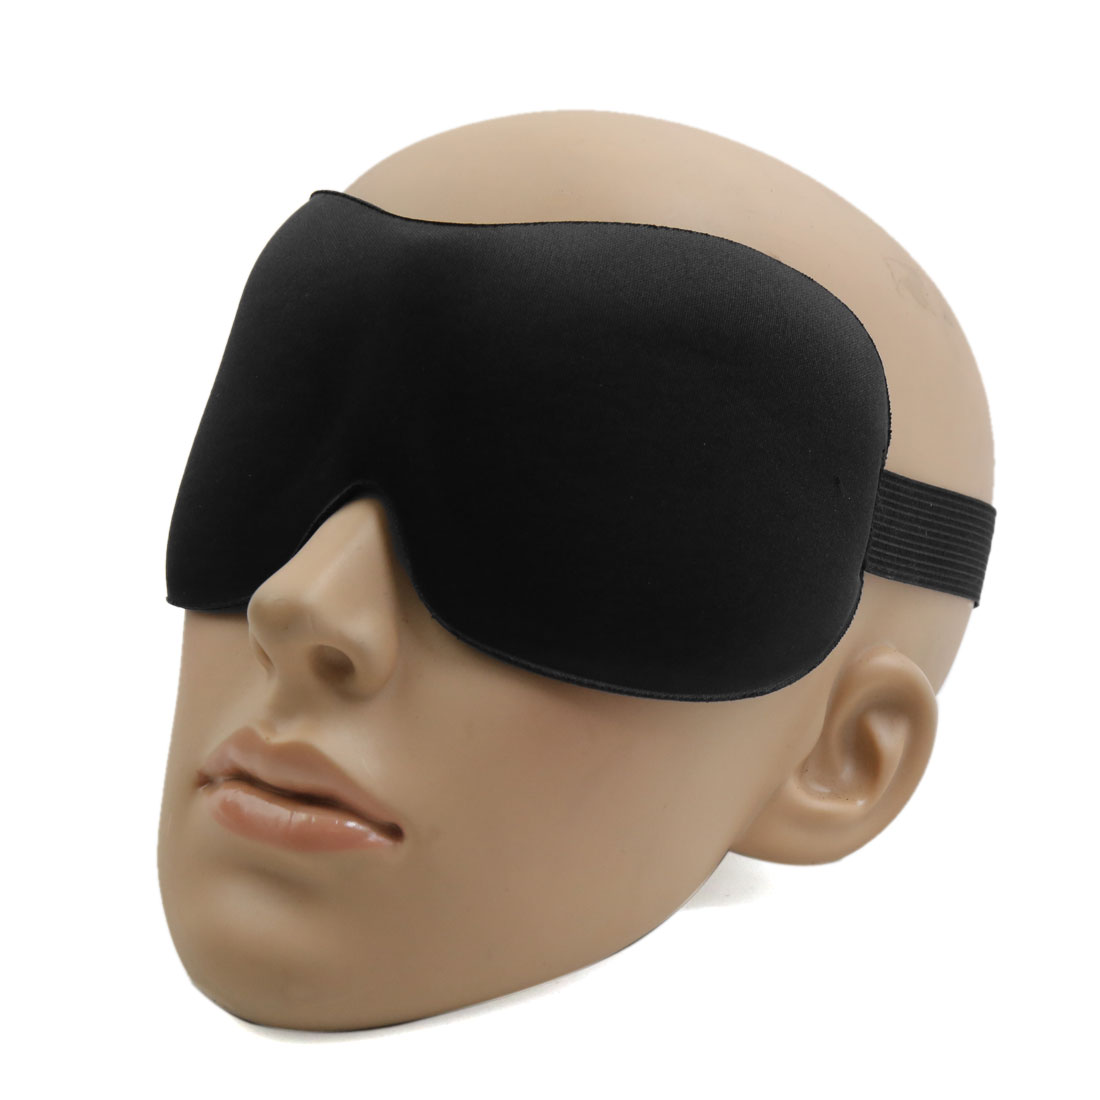 Travel 3D Eye Sleep Mask Padded Shade Cover Rest Relax Sleeping Blindfold Shield Black